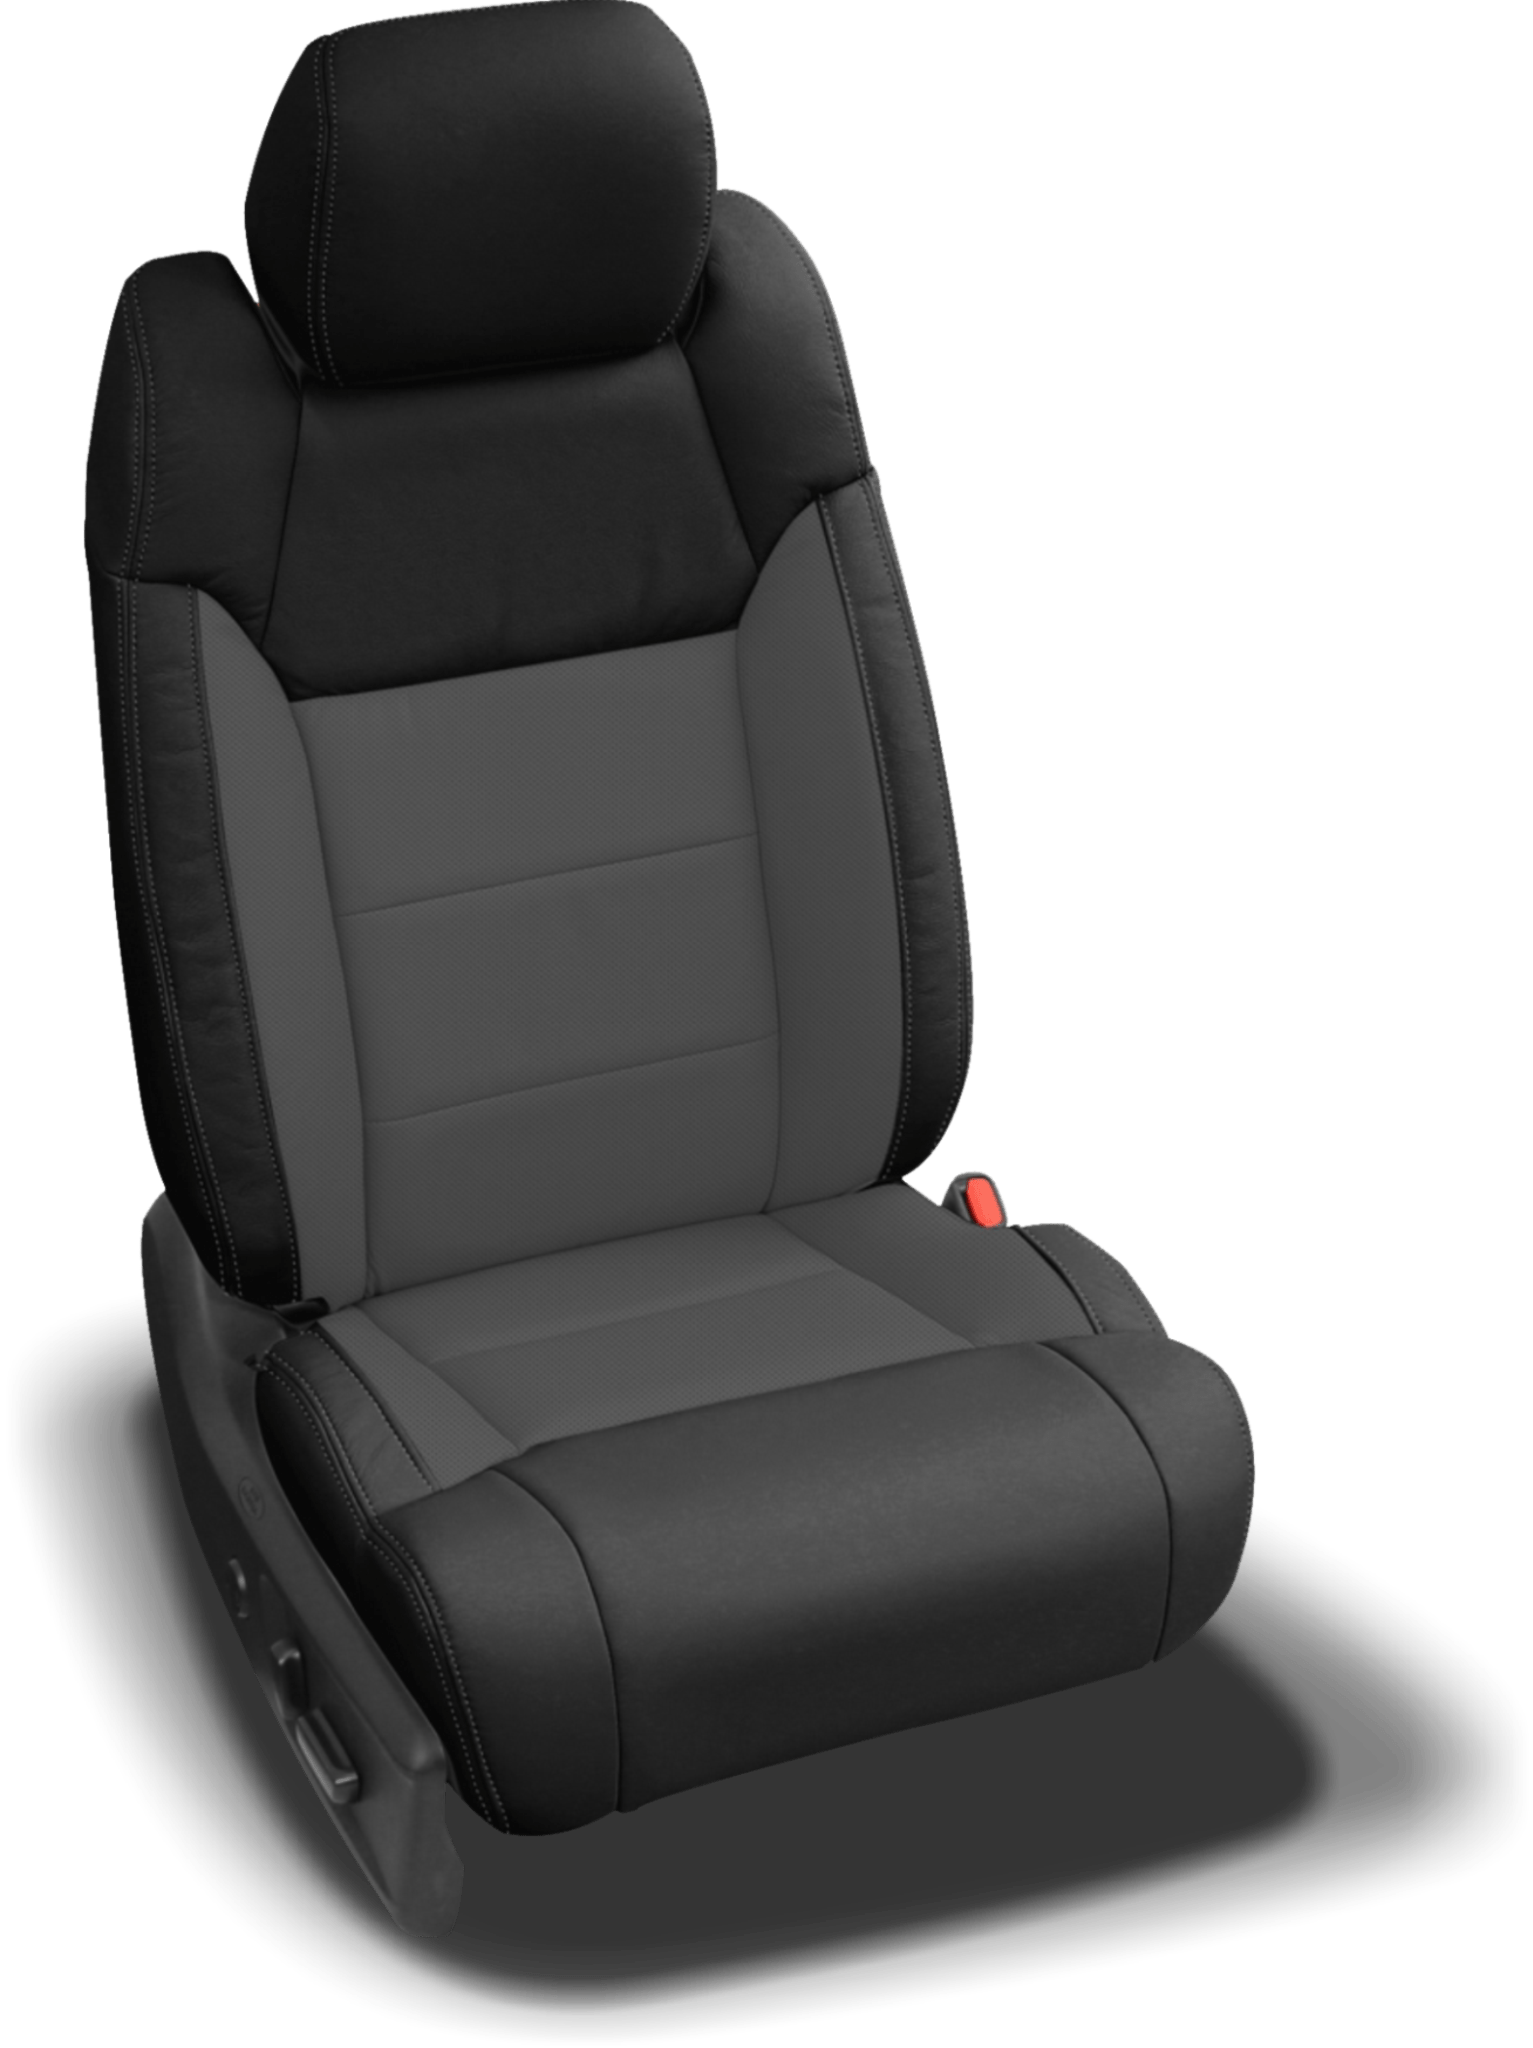 Car Seat Chair Custom Car Seat Upholstery Car Seat Reupholstery Service